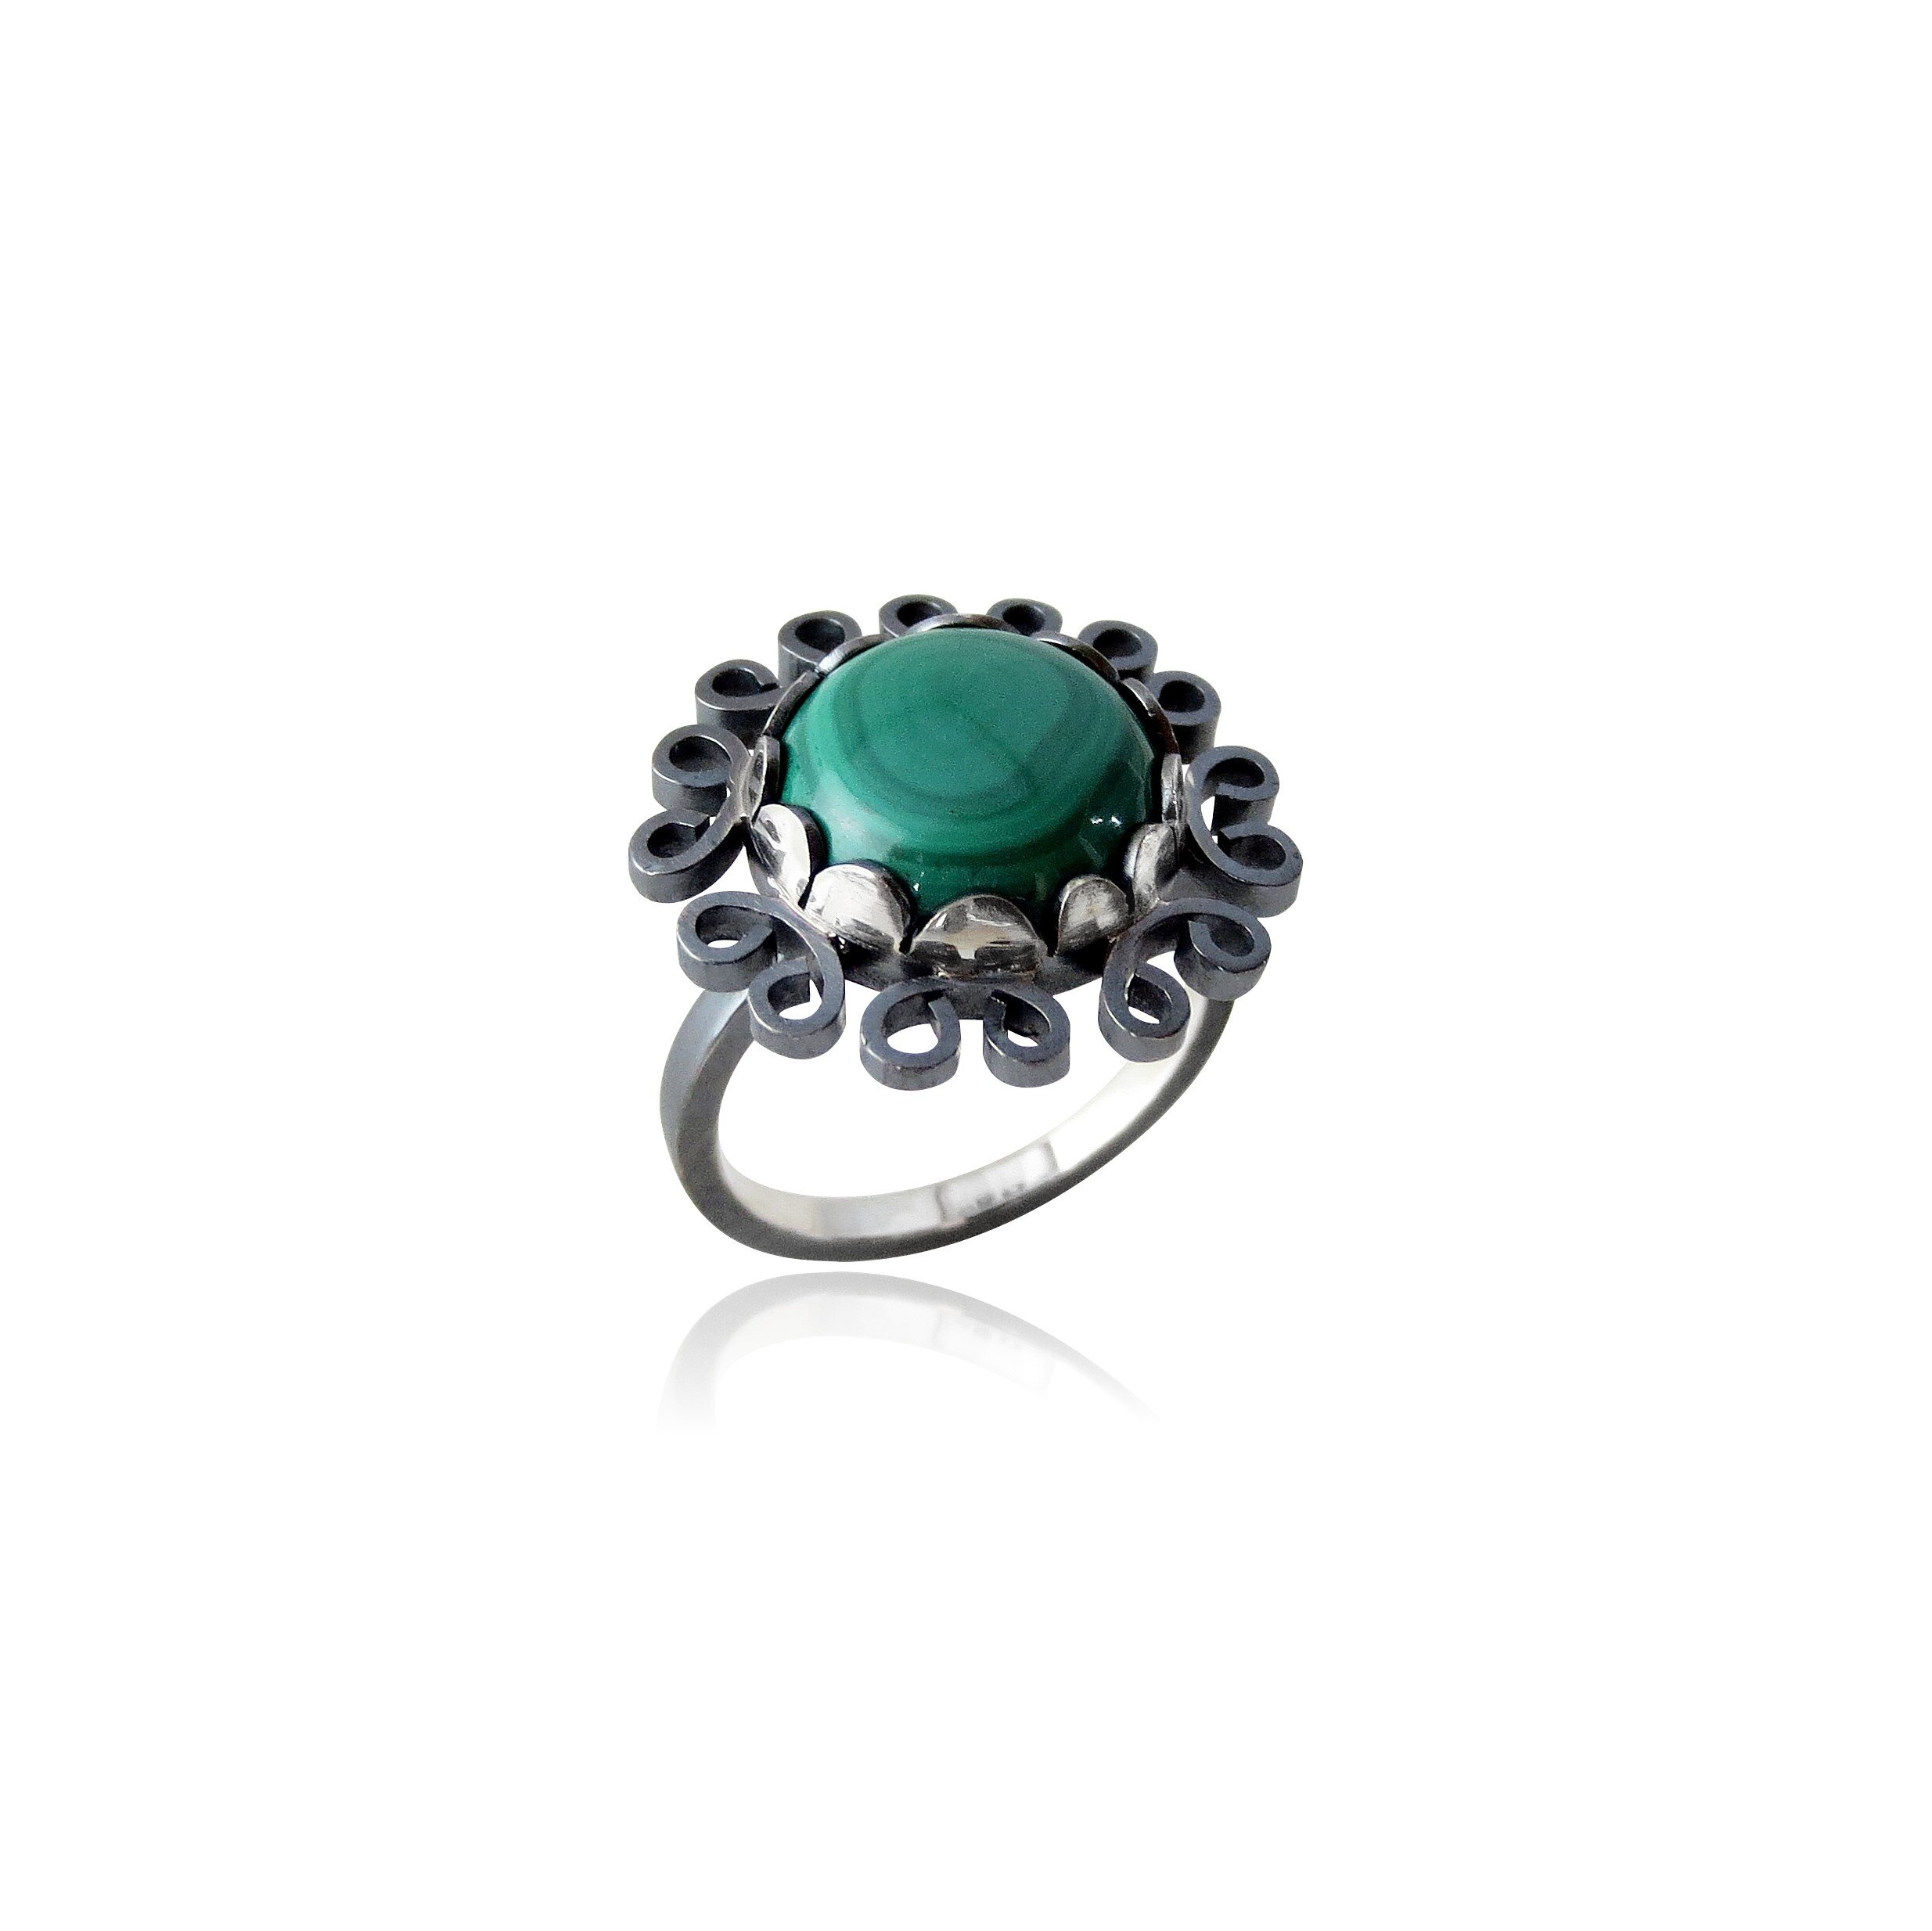 Oxidized sterling silver with malachite.